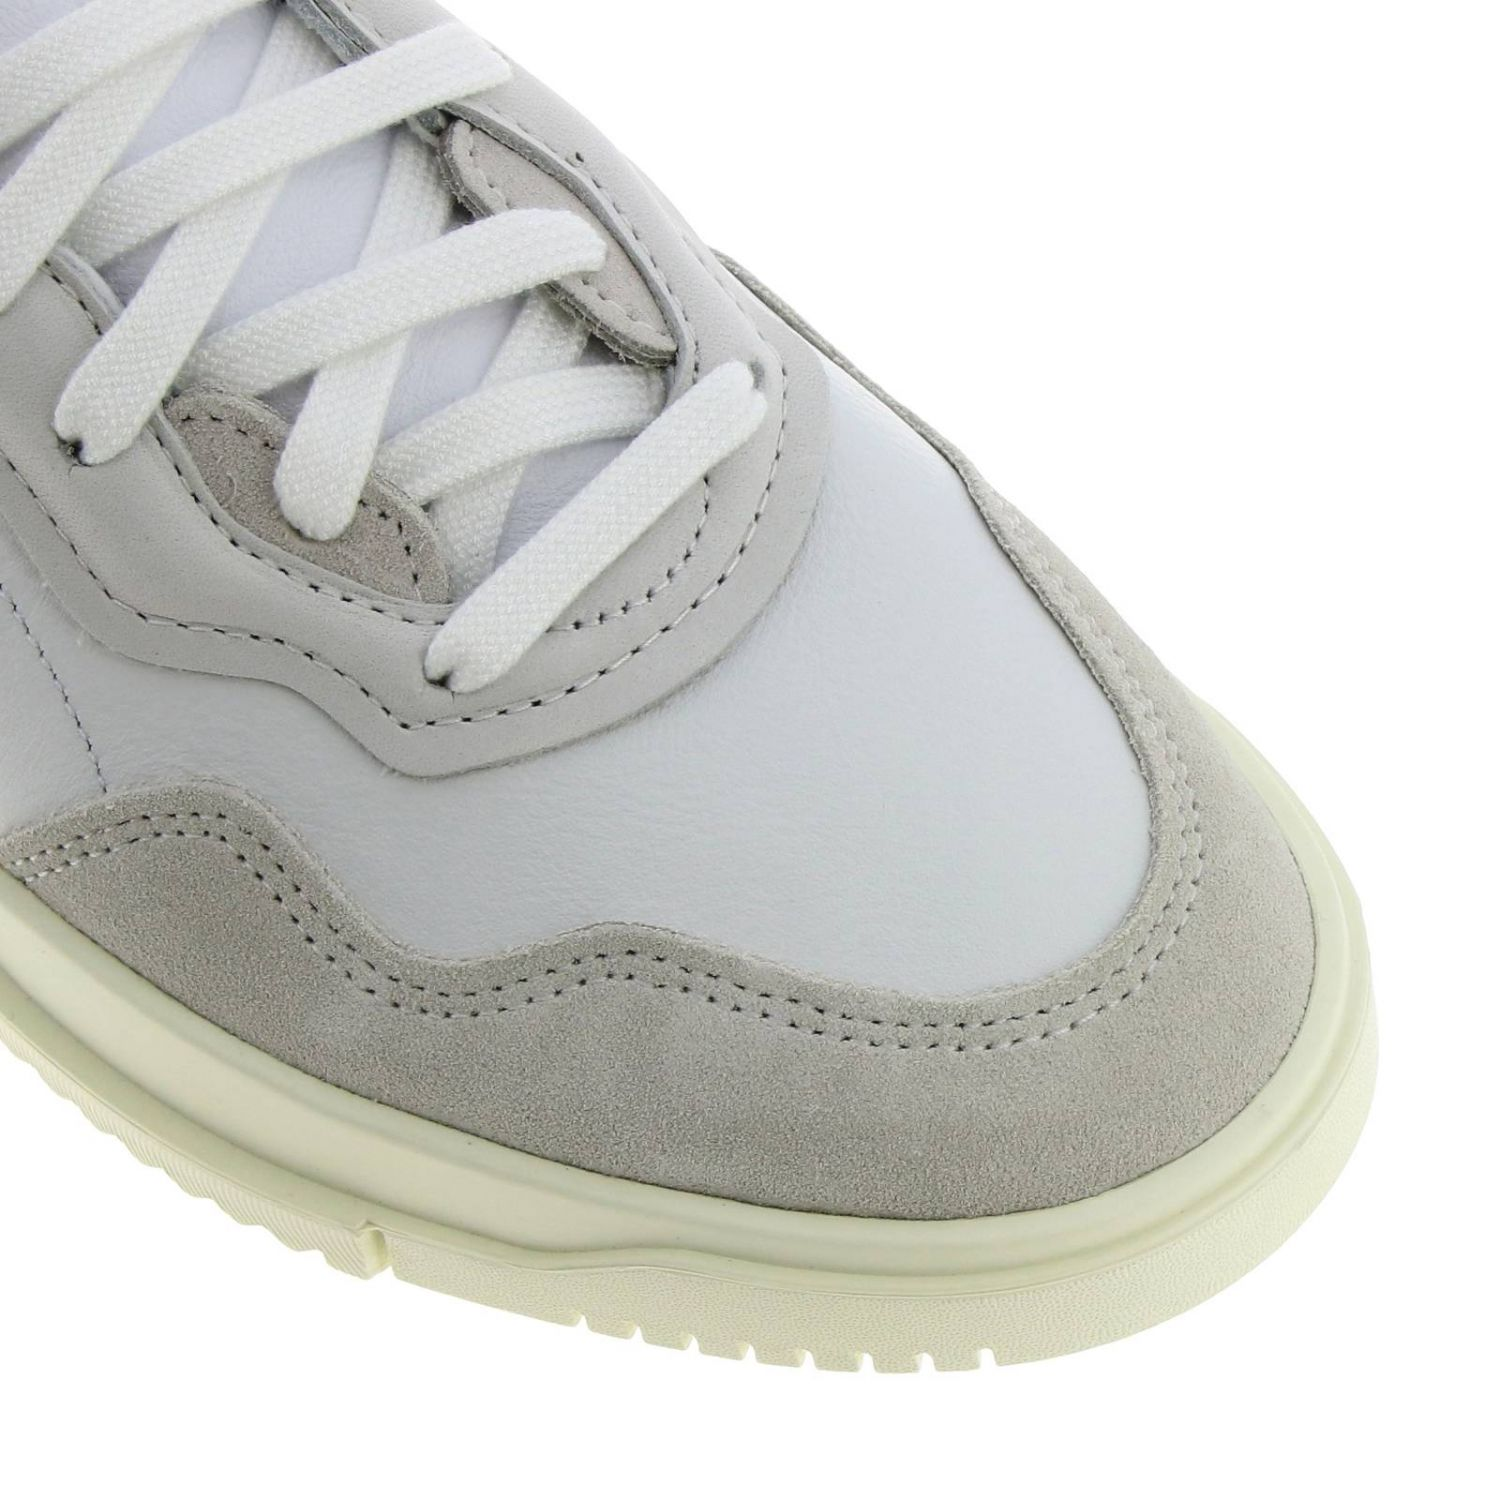 Sneakers Adidas Originals: Originals Originals Sc premiere sneakers in leather and suede white 3